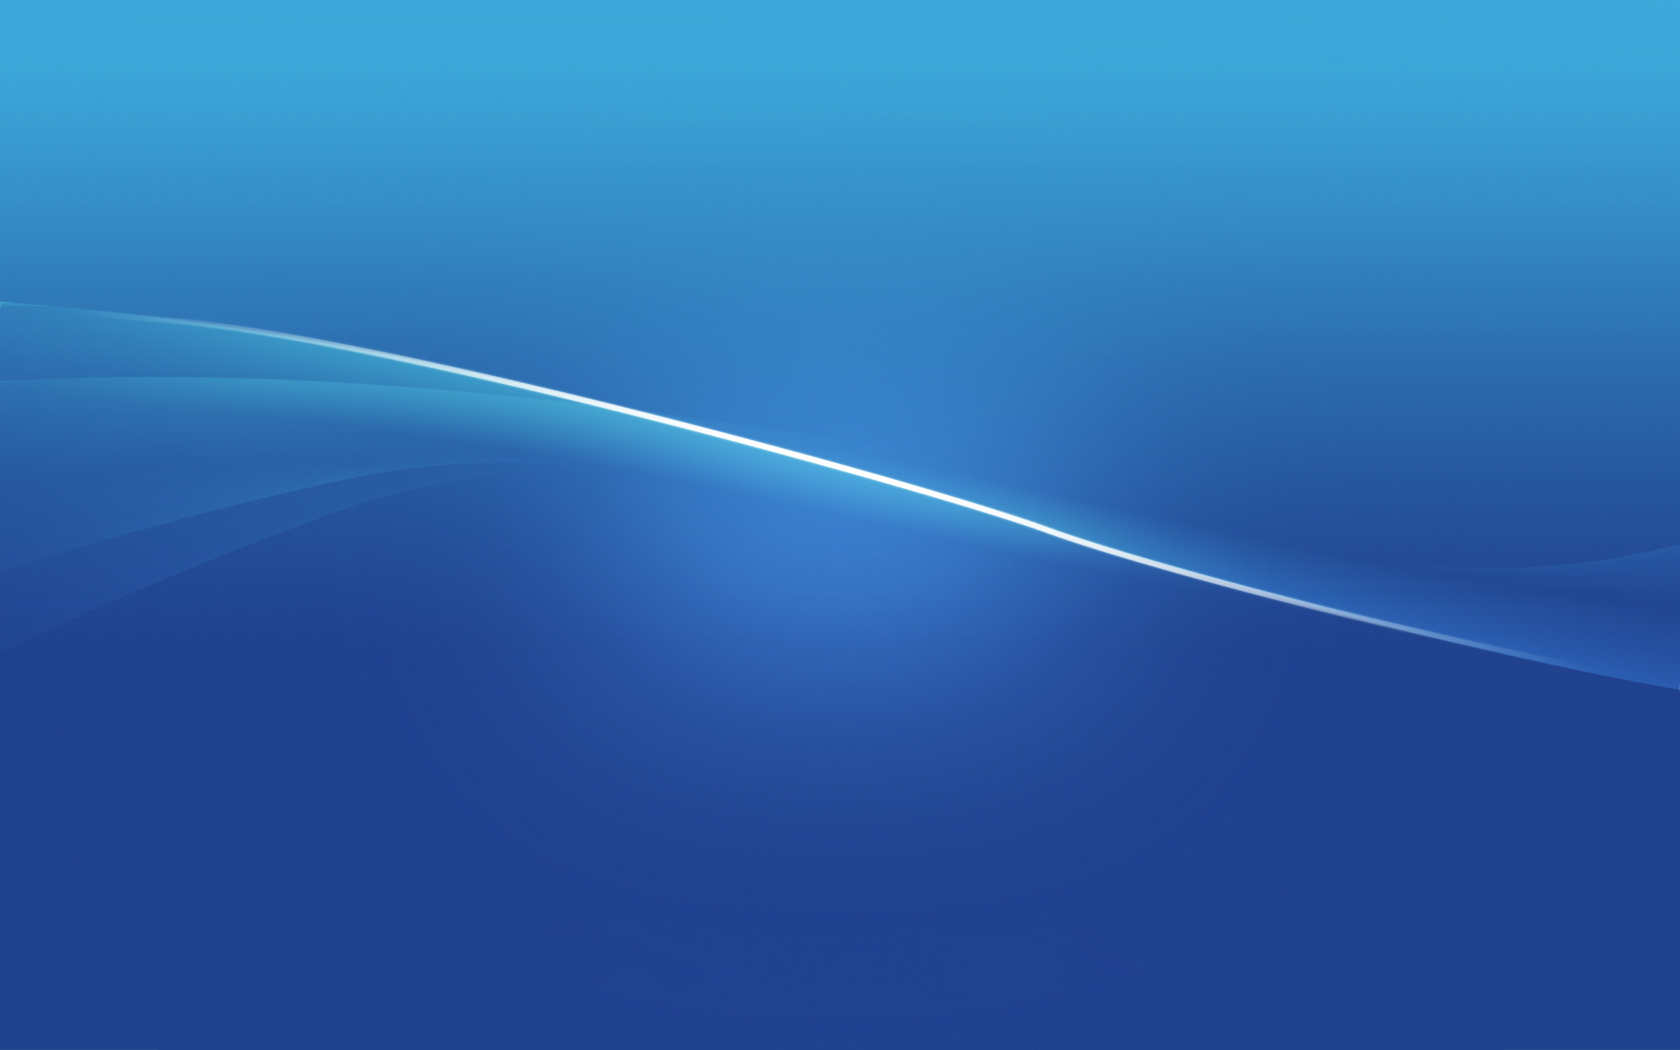 Abstract Desktop Backgrounds HD Wallpapers Art Images blue 1680x1050